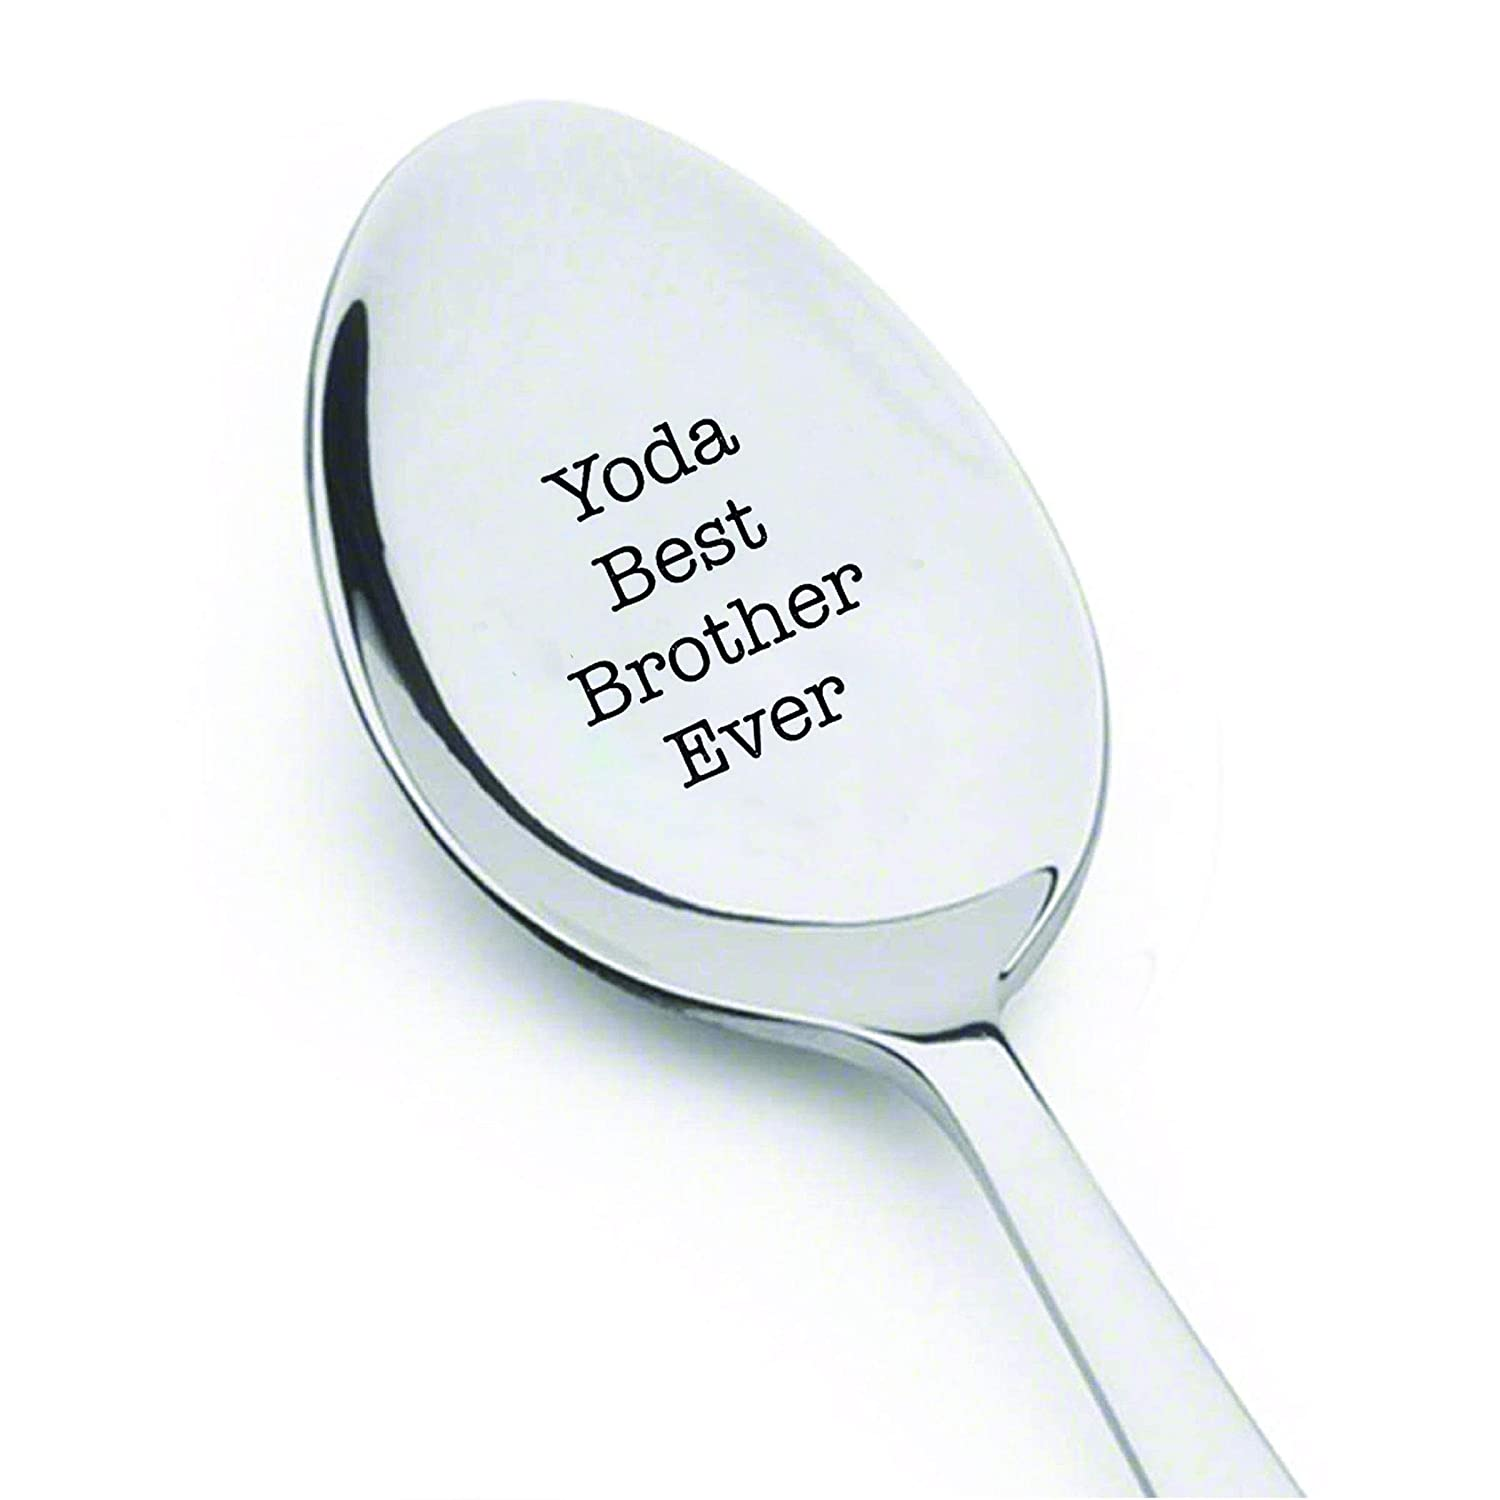 Best Selling Item Star Wars Gift under 20 Gift for him brother Birthday gift brothers Gift Yoda Best brother Ever 7 Inches engraved spoon Customized spoon